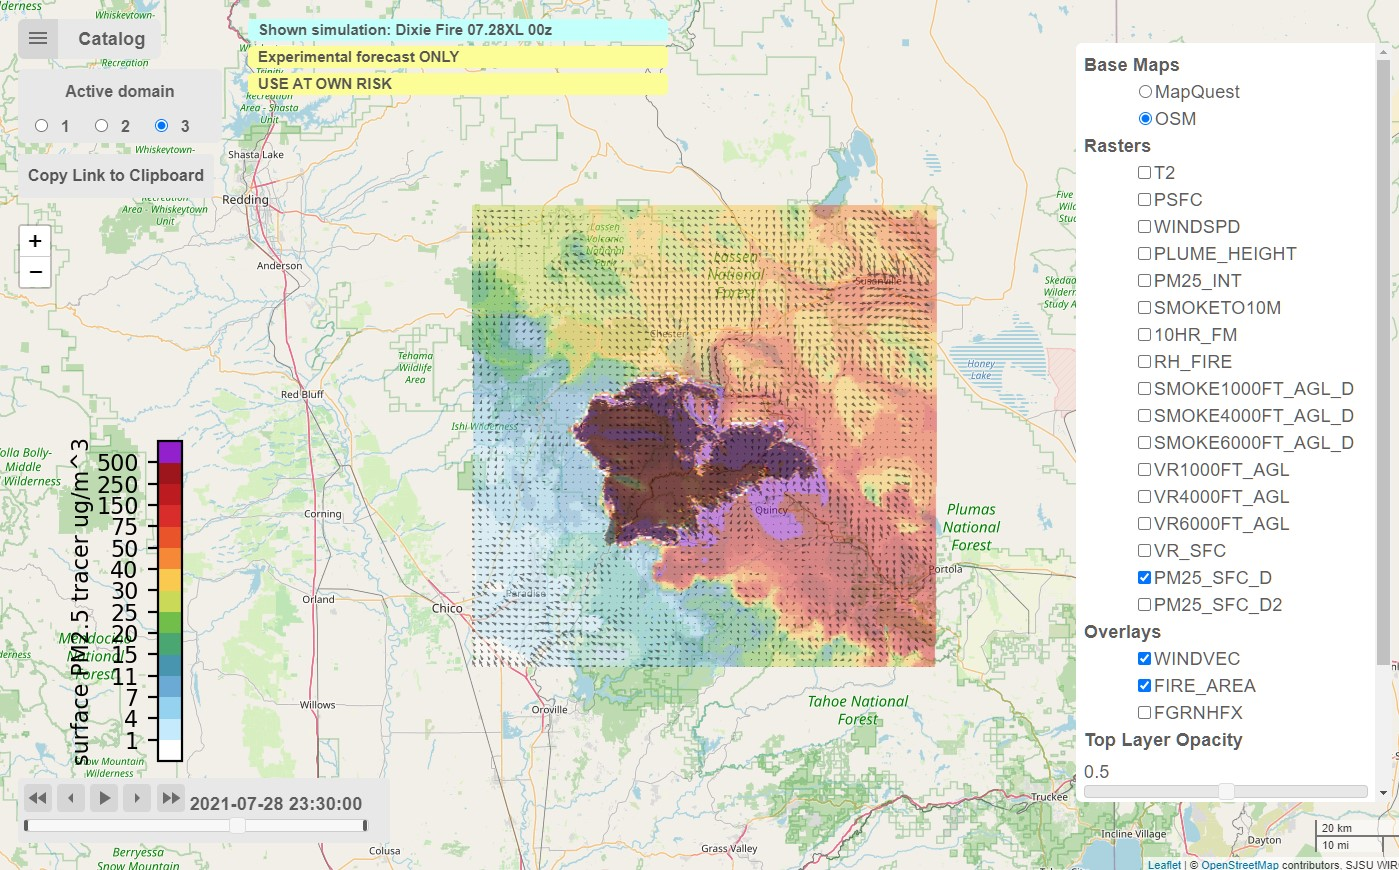 Experimental WRF-SFIRE product showing smoke forecasts from the Dixie fire on July 28, 2021. Increasing smoke concentration is shown in colors from ranging from white to purple, while the region where the fire is burning is shown in in the center as a darker contour. Credits: NASA, San Jose State University (SJSU), University of Colorado Denver (CU Denver) and Colorado State University (CSU)